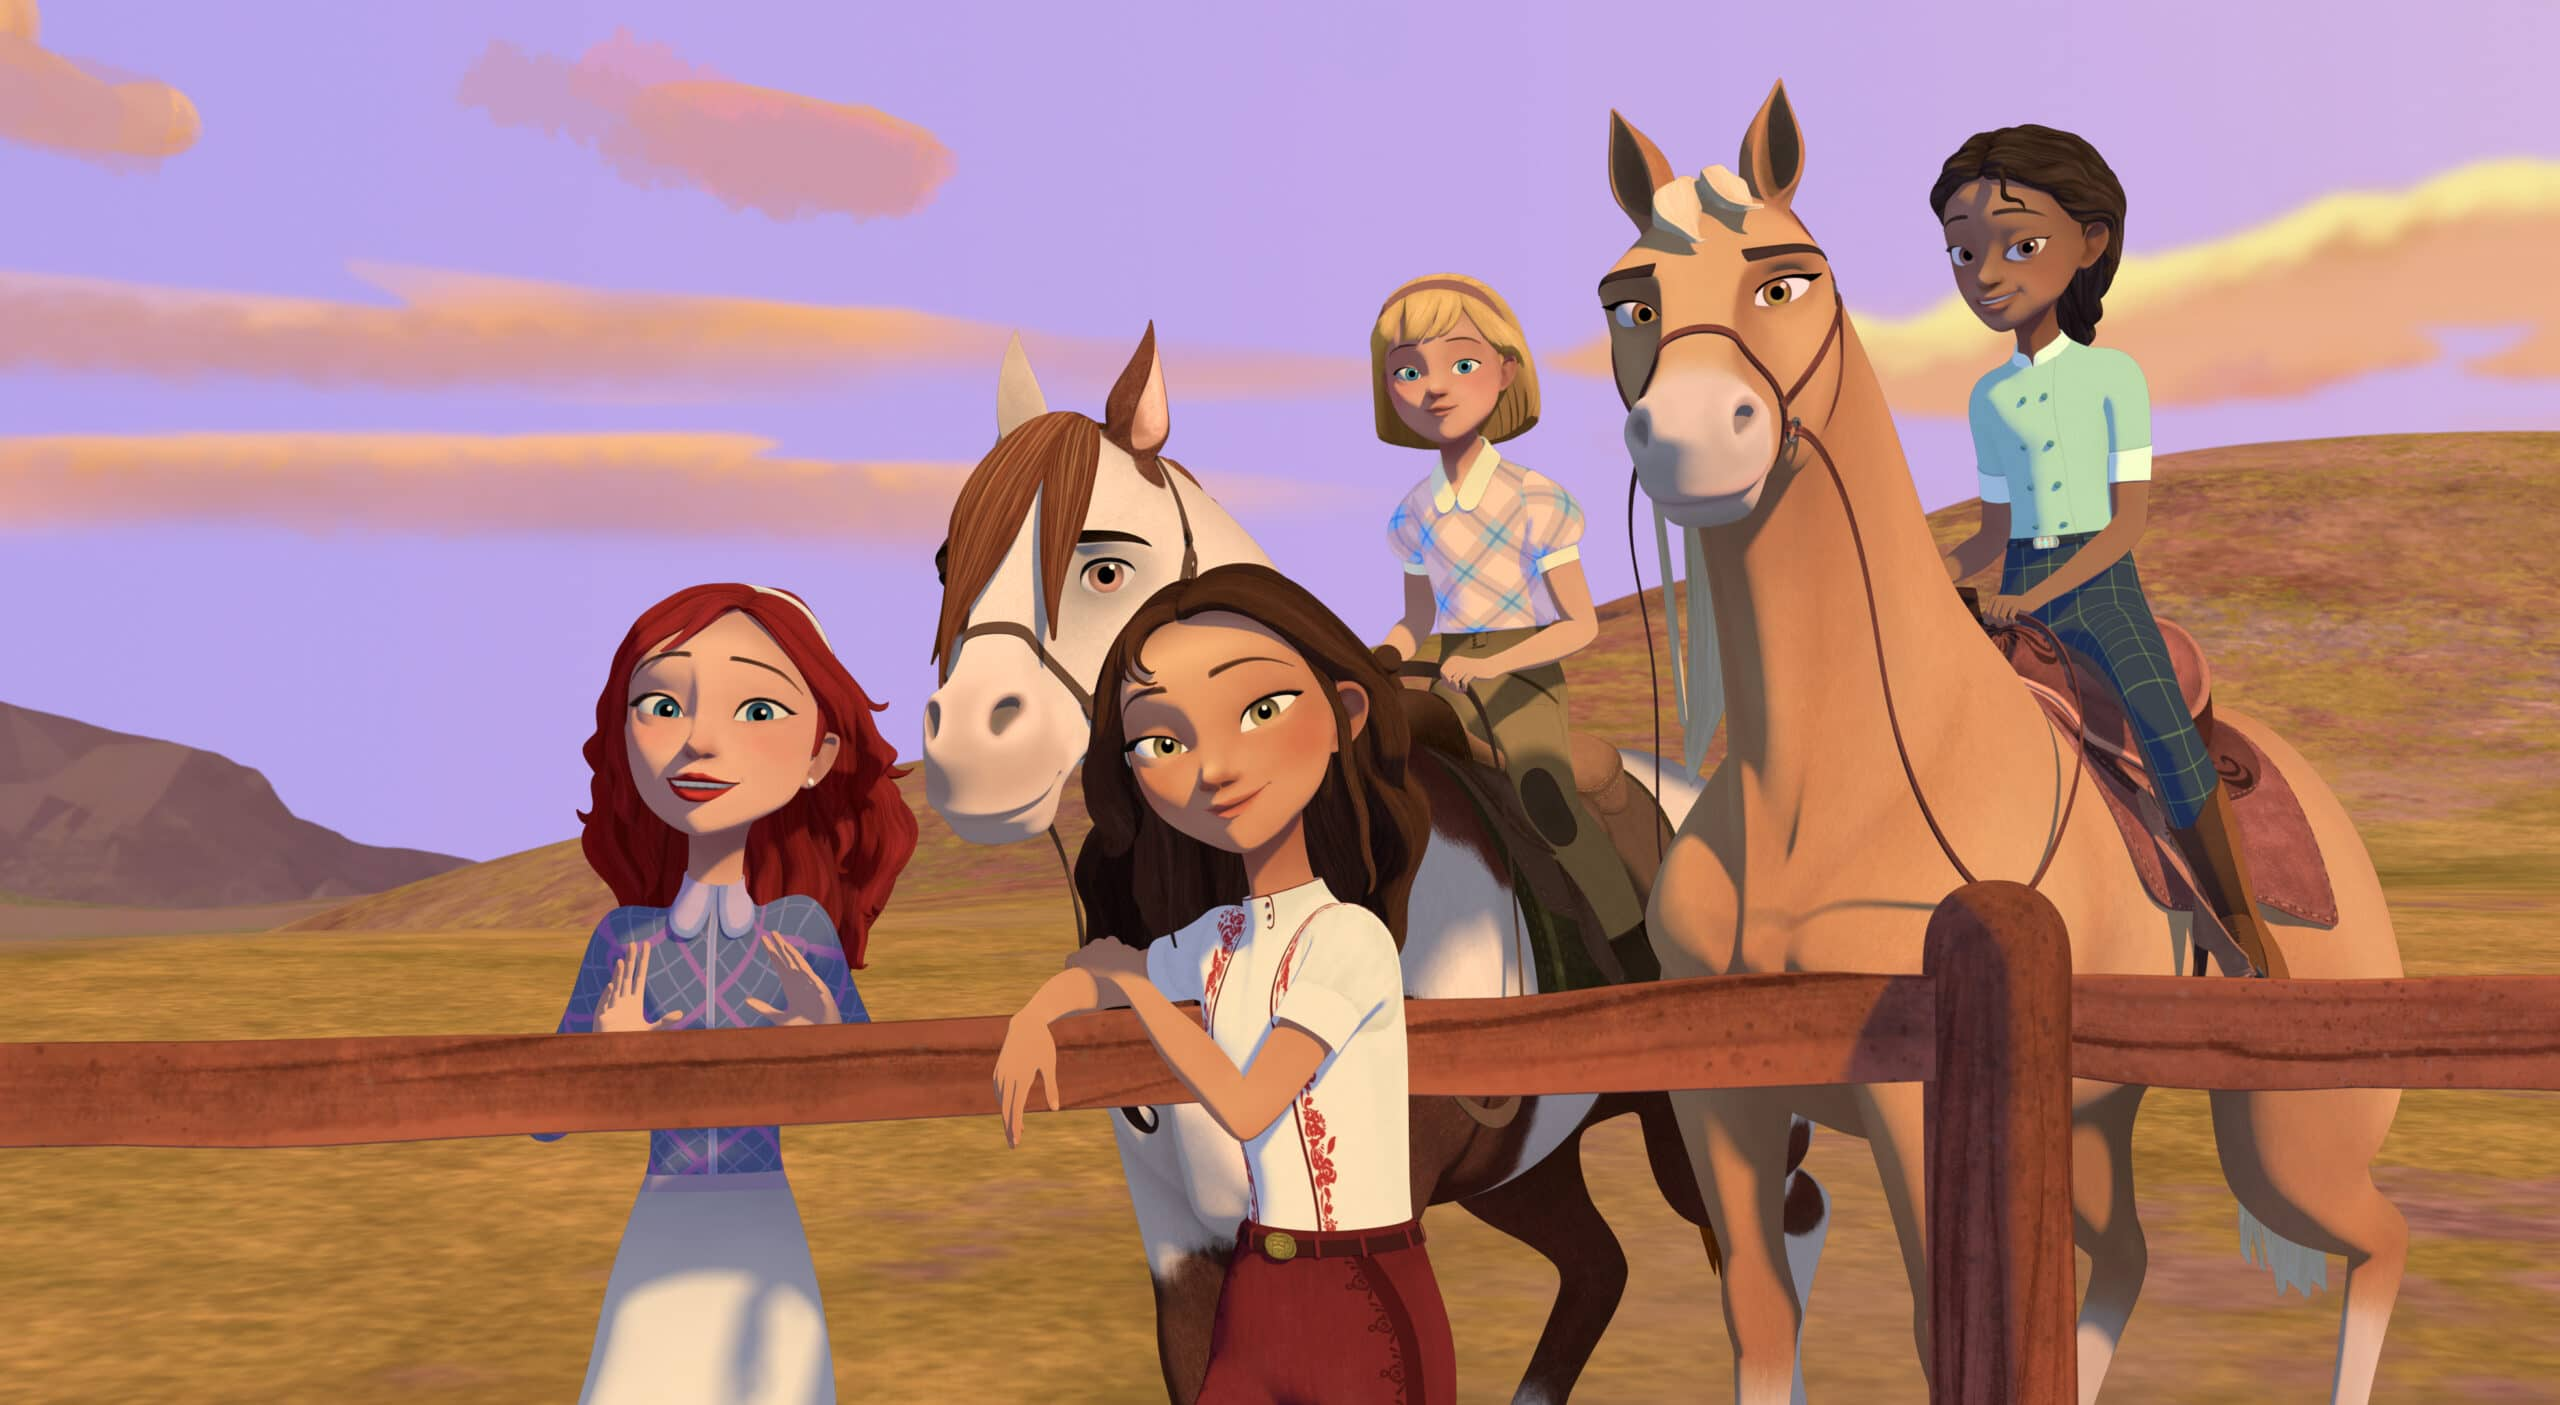 Spirit Riding Academy Part 2 Girls. Inspired by the 2002 Oscar-nominated film ?Spirit: Stallion of the Cimarron,DreamWorks Spirit Riding Free?: Riding Academy Part 2takes place during their final term as Foals, Lucky, Pru & Abigail have finally adjusted to life at Palomino Bluffs Riding Academy when Mariciela announces that she and Mystery will be joining them!